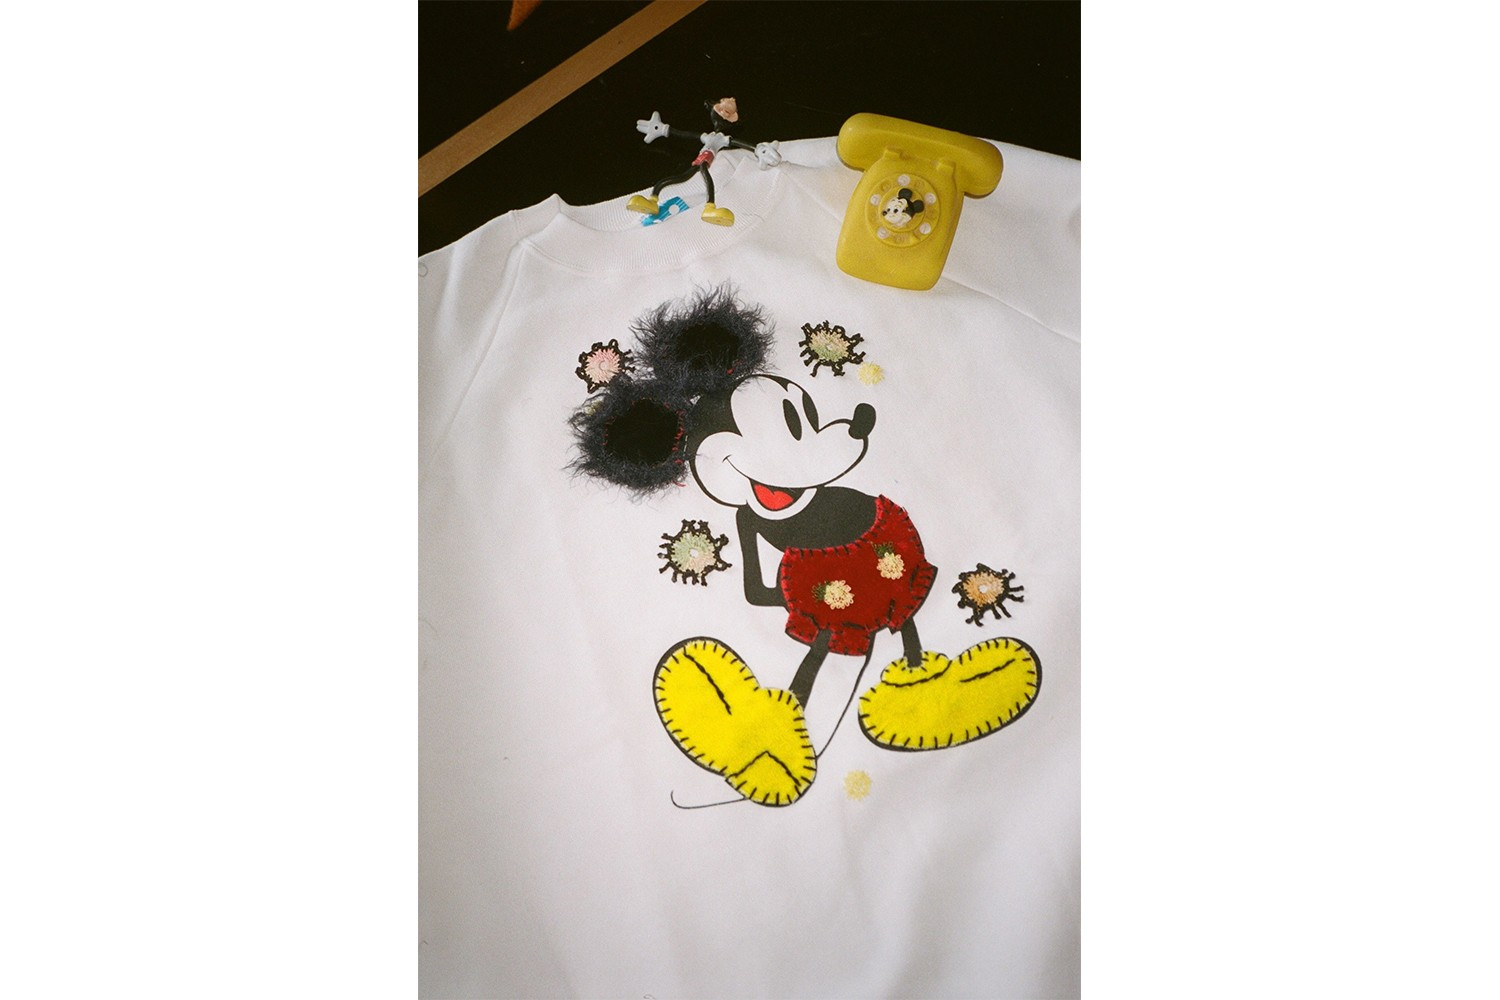 bentgablenits Mickey Mouse Collection Release Info T shirt Hoodie Crewneck Info Date Buy Angelo Nitsopoulos Kai Levi Brenda Bent Karen Gable